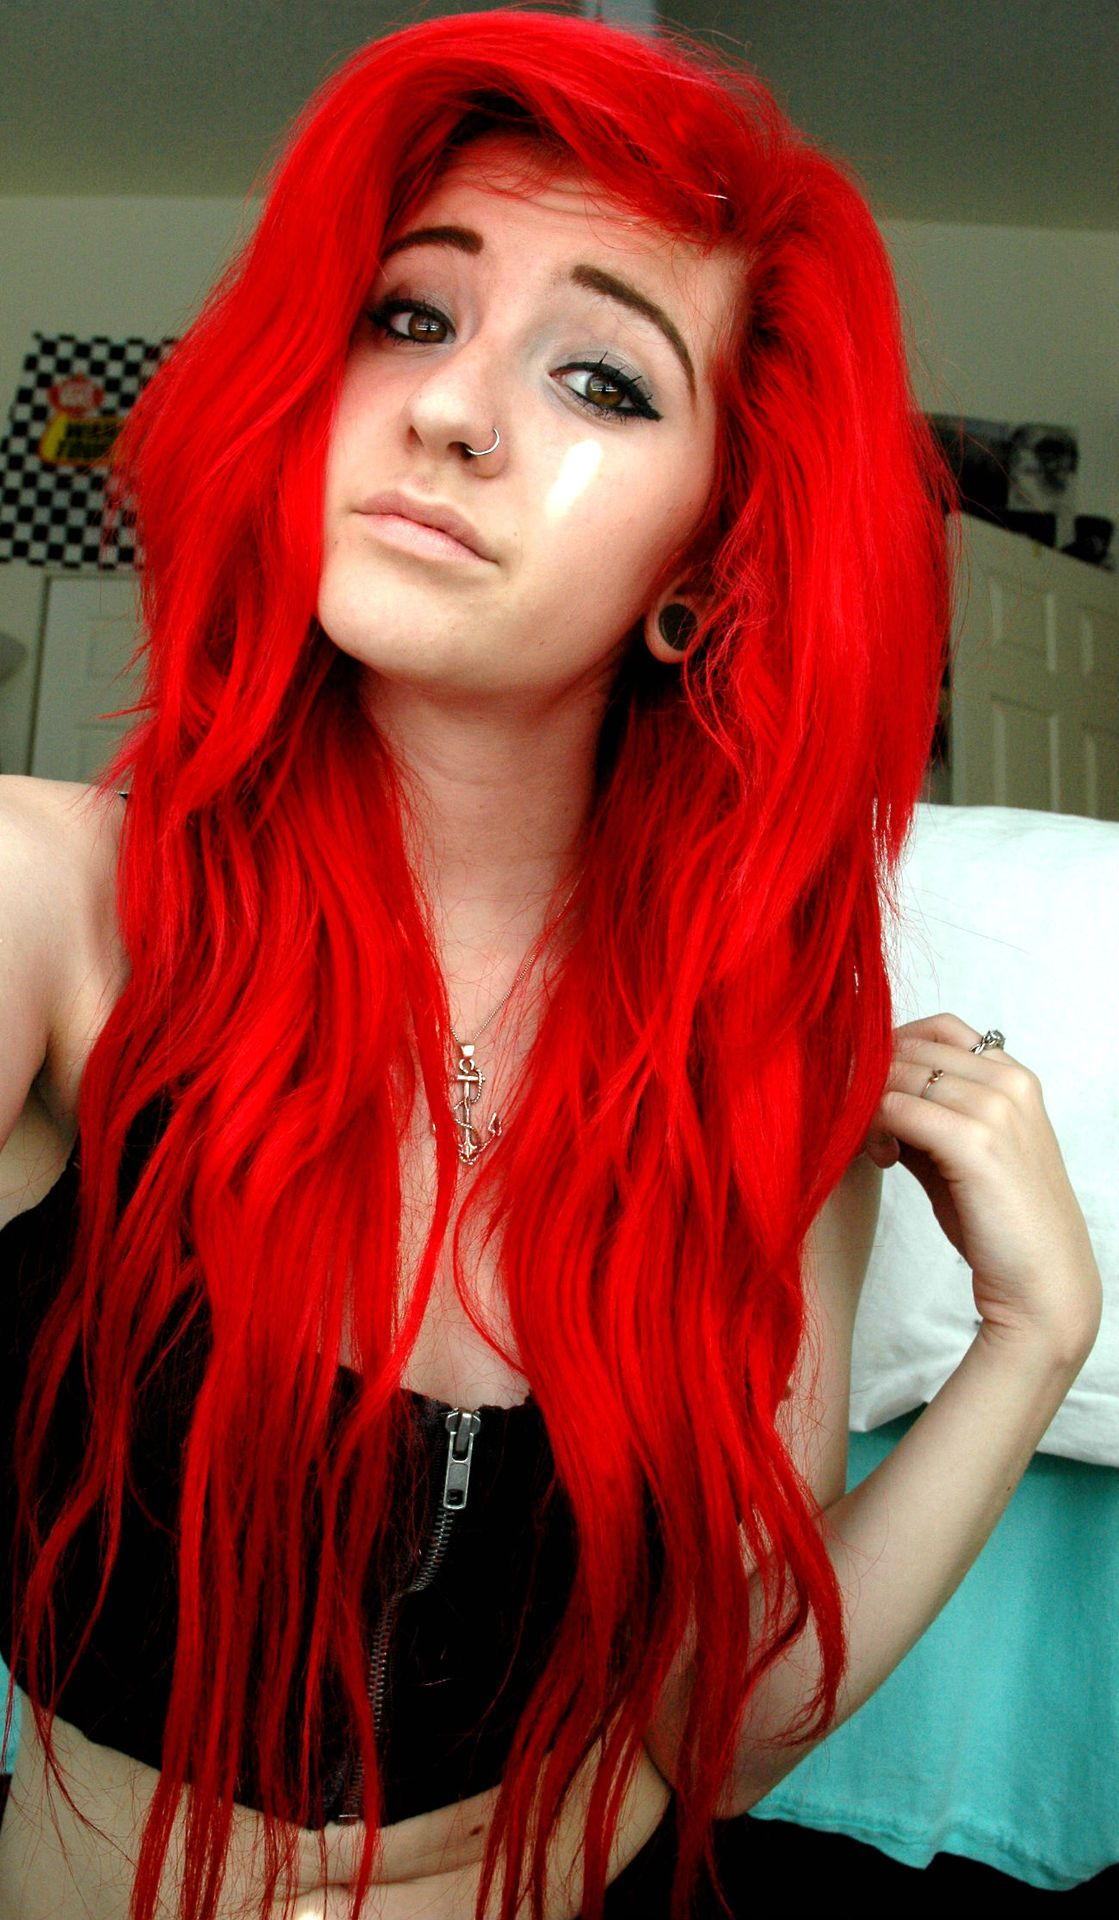 Cute Colored Hair Tumblr Google Search Red Hair Images Dyed Red Hair Bold Hair Color